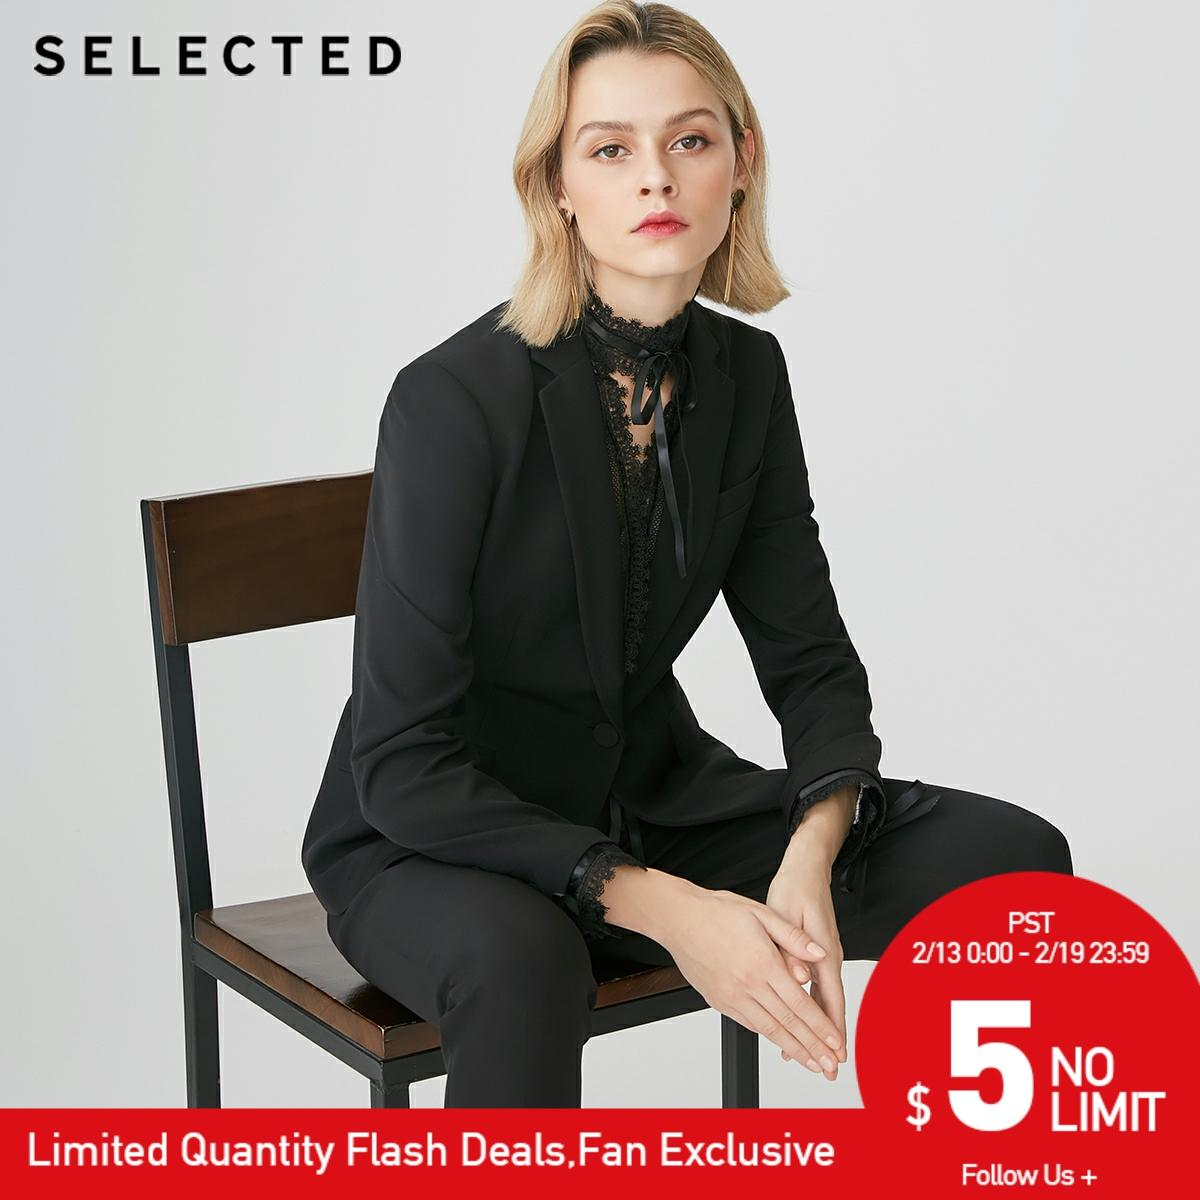 SELECTED Women's Pure Color Lace Business Casual Blazer SIG|419172509【Fan Get New Arrivals Coupons In The Description】